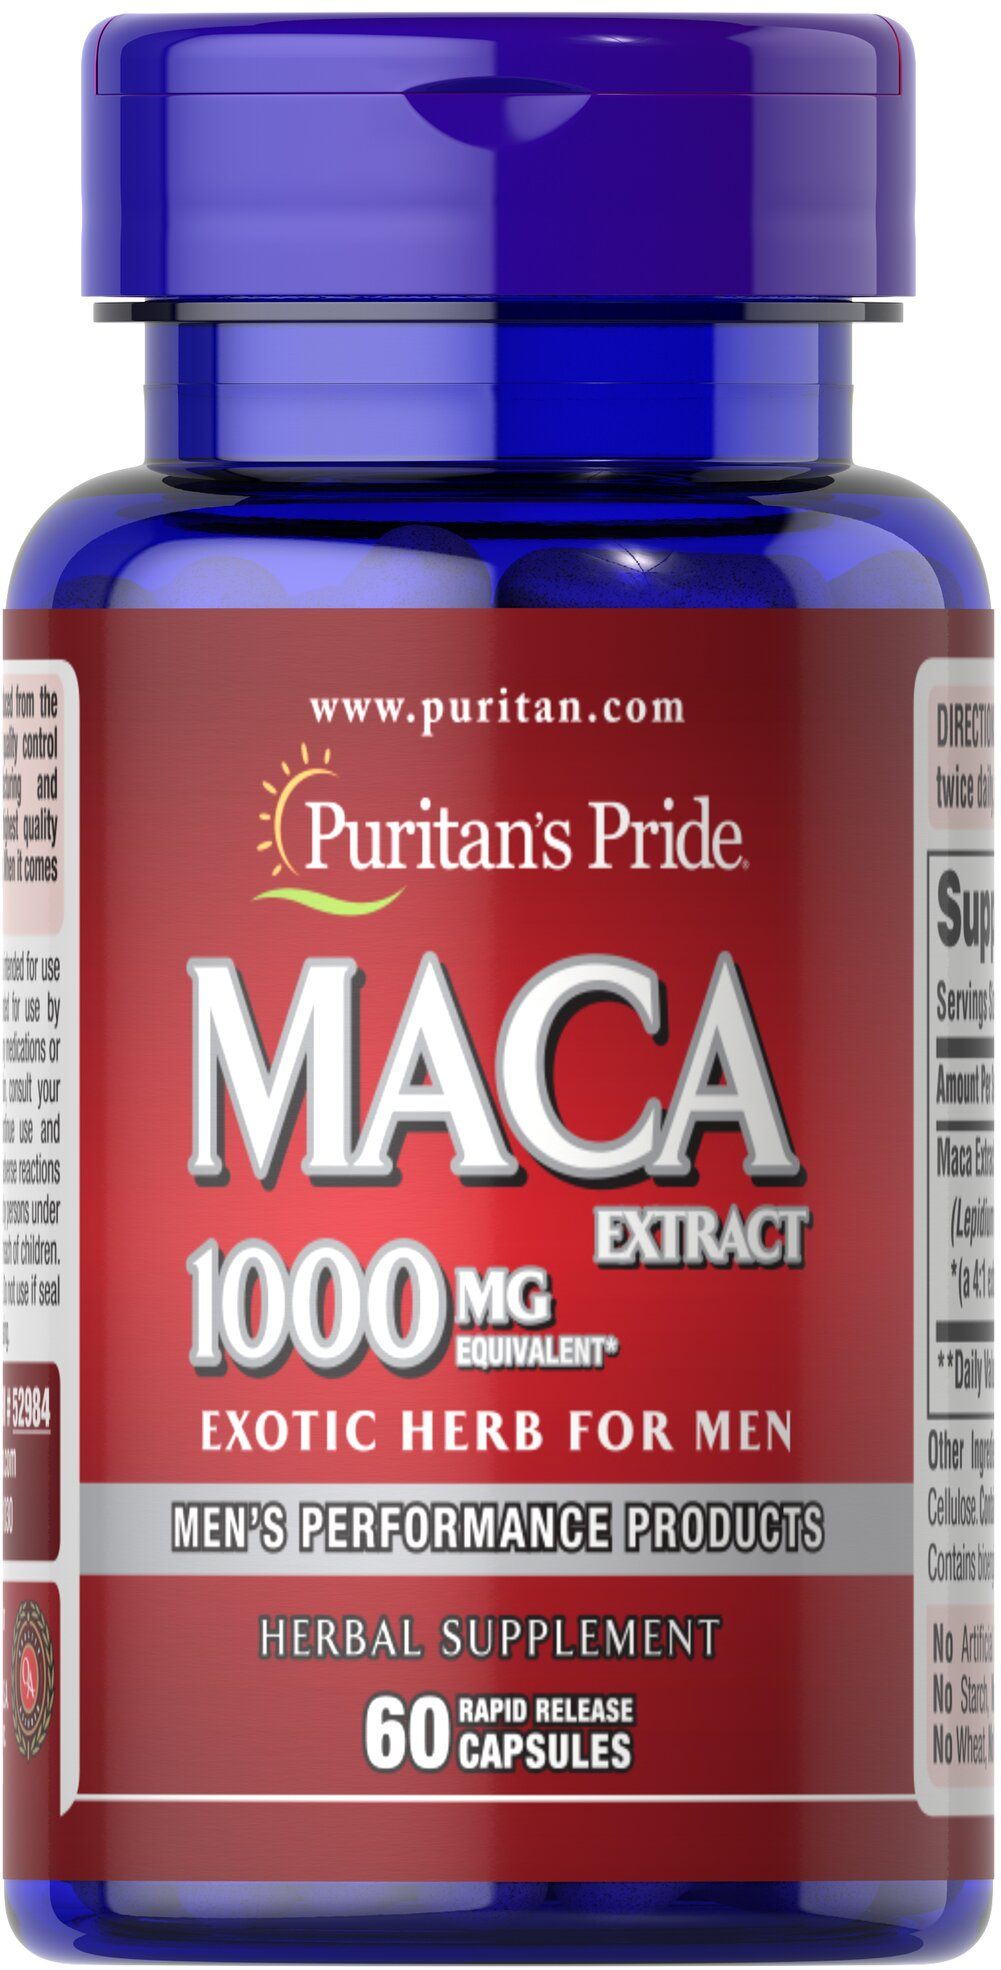 Maca 1000 mg Exotic Herb for Men  60 Capsules 1000 mg $19.99